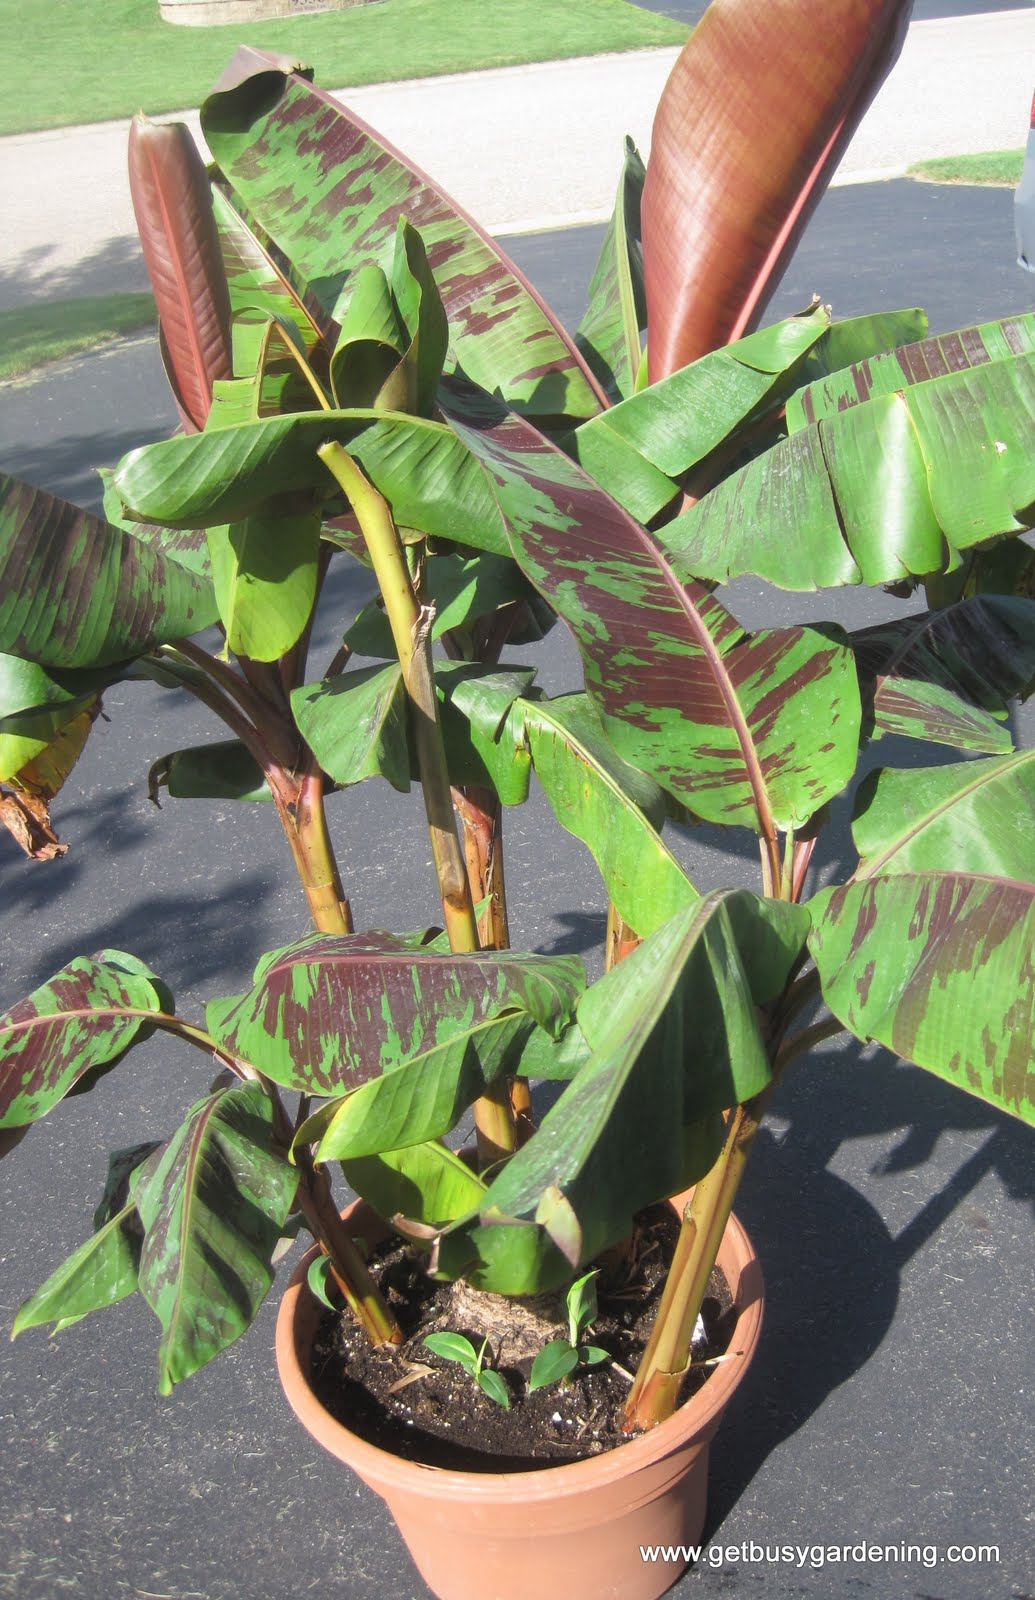 How To Propagate Banana Plants - Get Busy Gardening